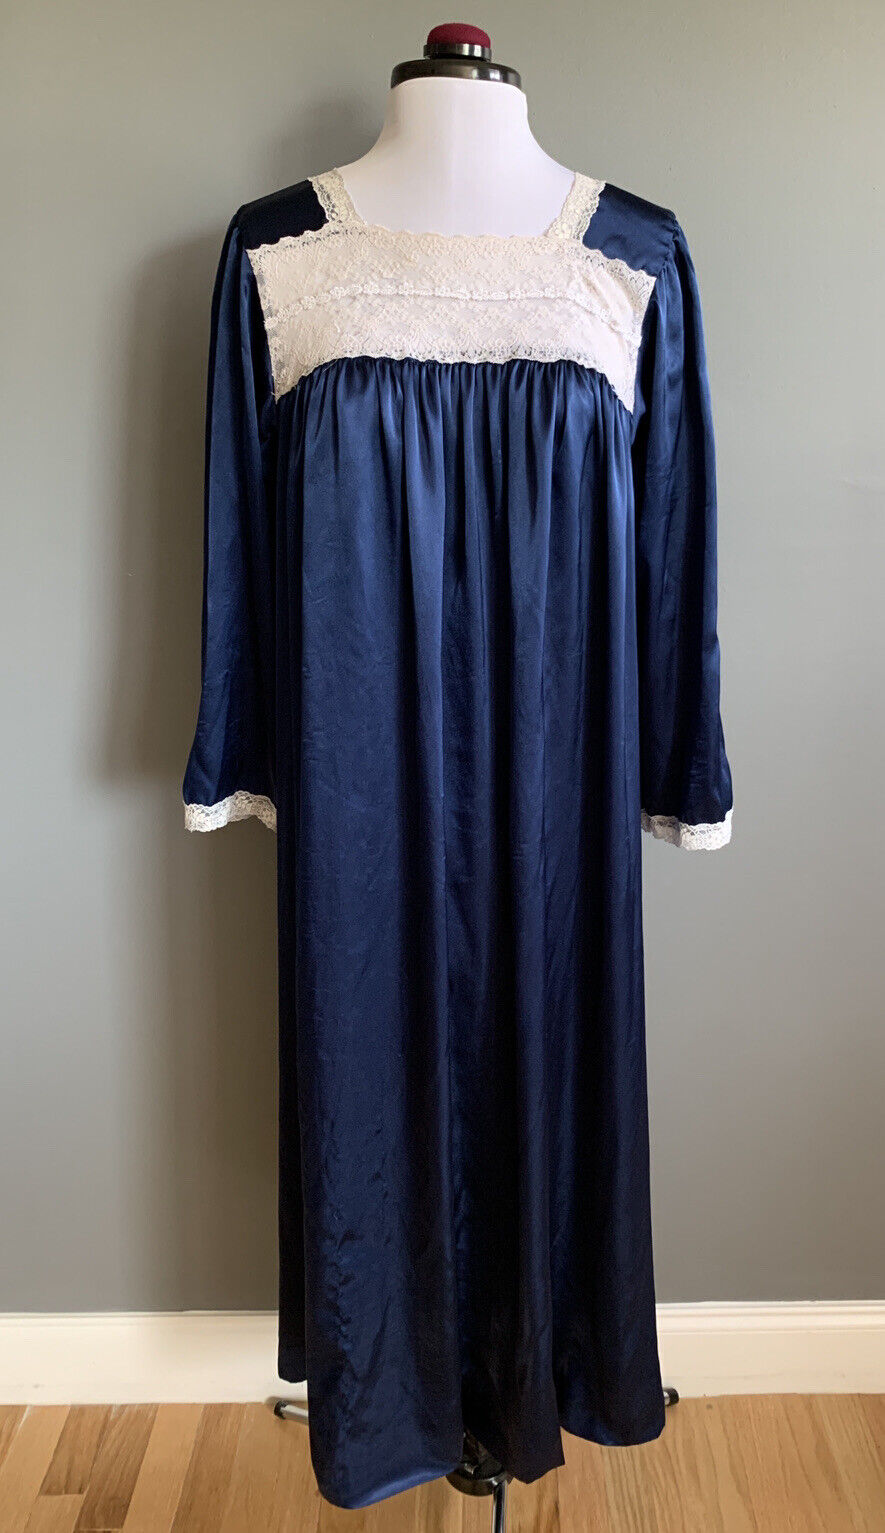 VINTAGE Christian DIOR Navy Nightgown Long Sleepwear lace Satin Lingerie Sleeve